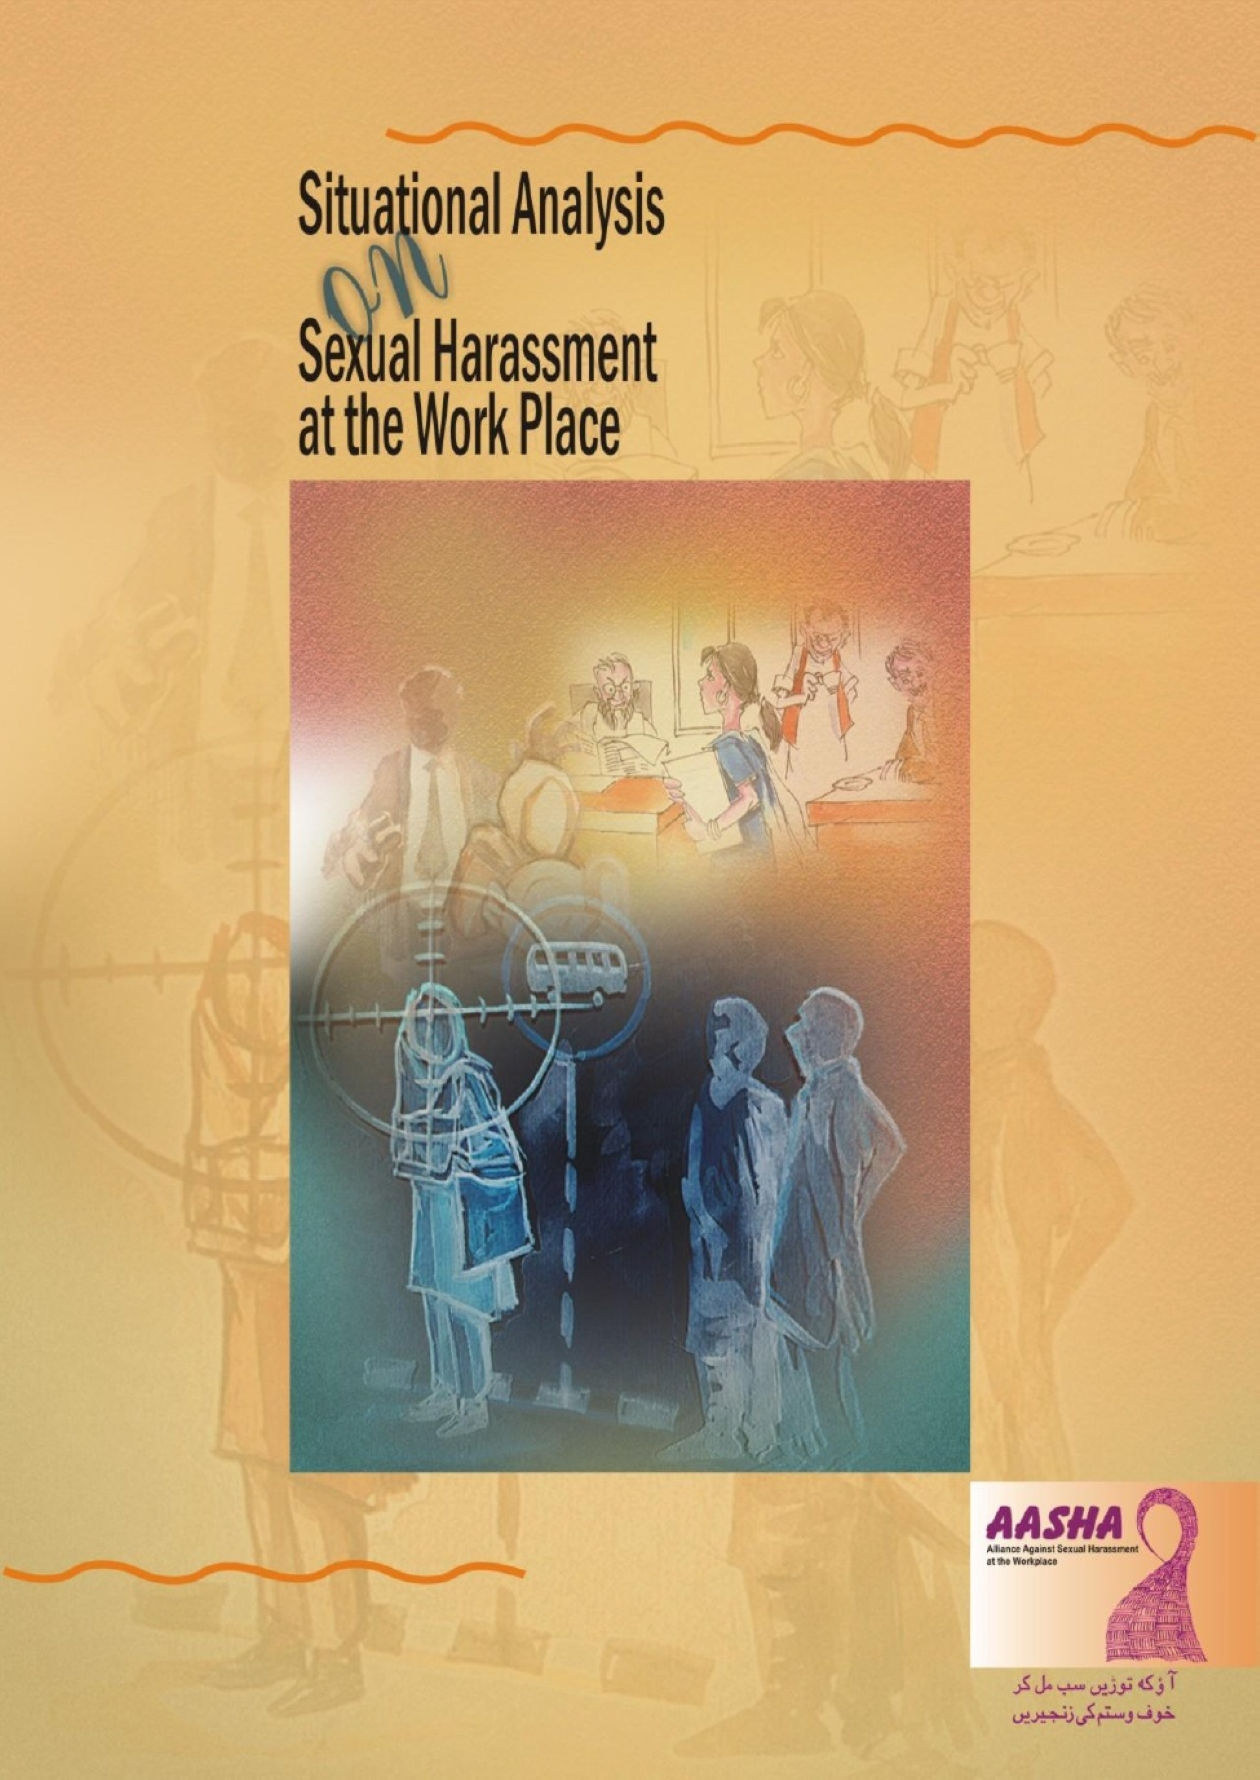 Situation Analysis on Sexual Harassment at Work Place